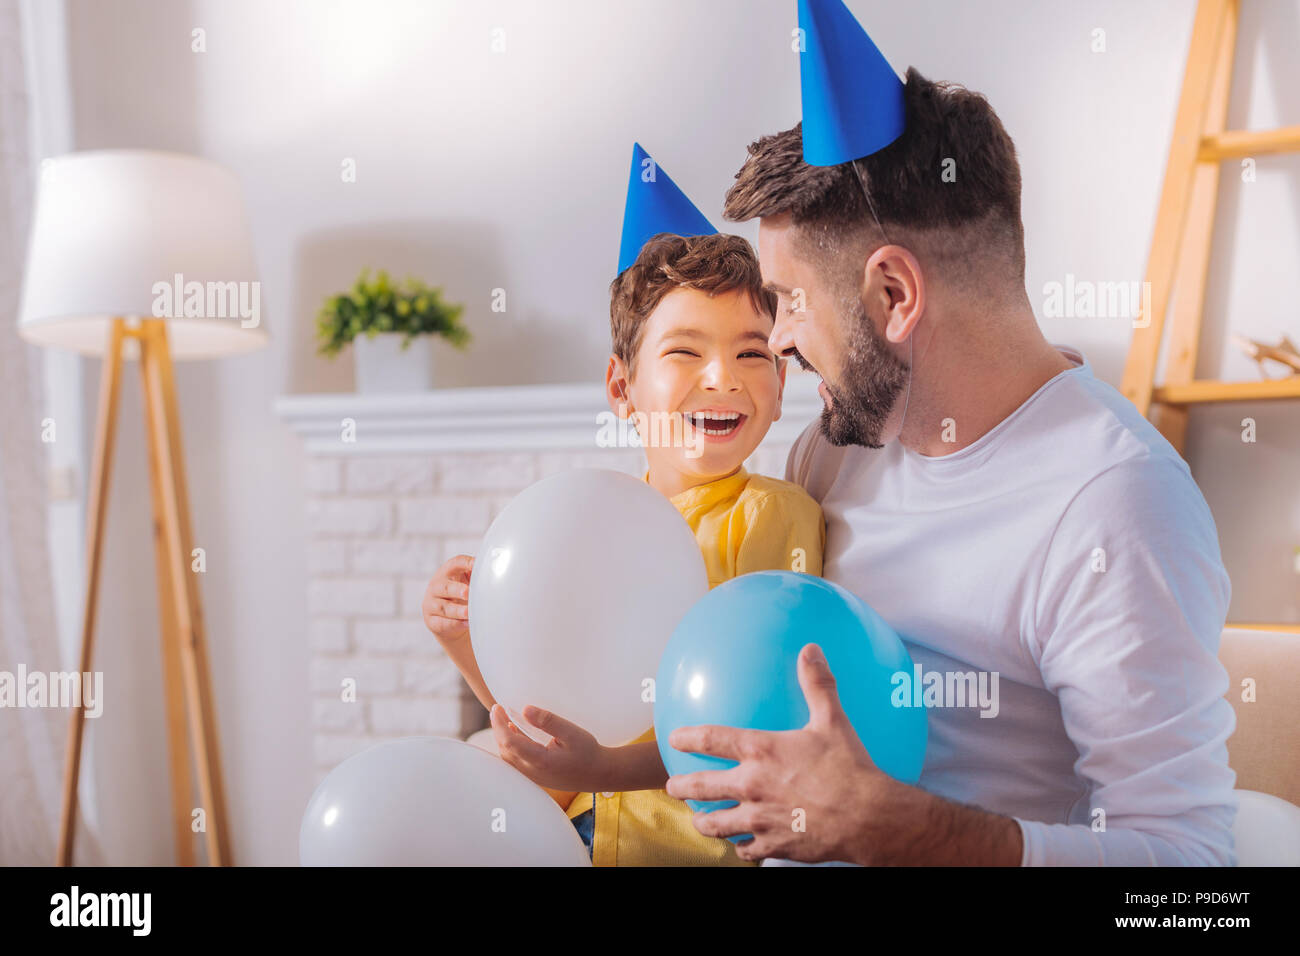 Happy child having birthday party - Stock Image